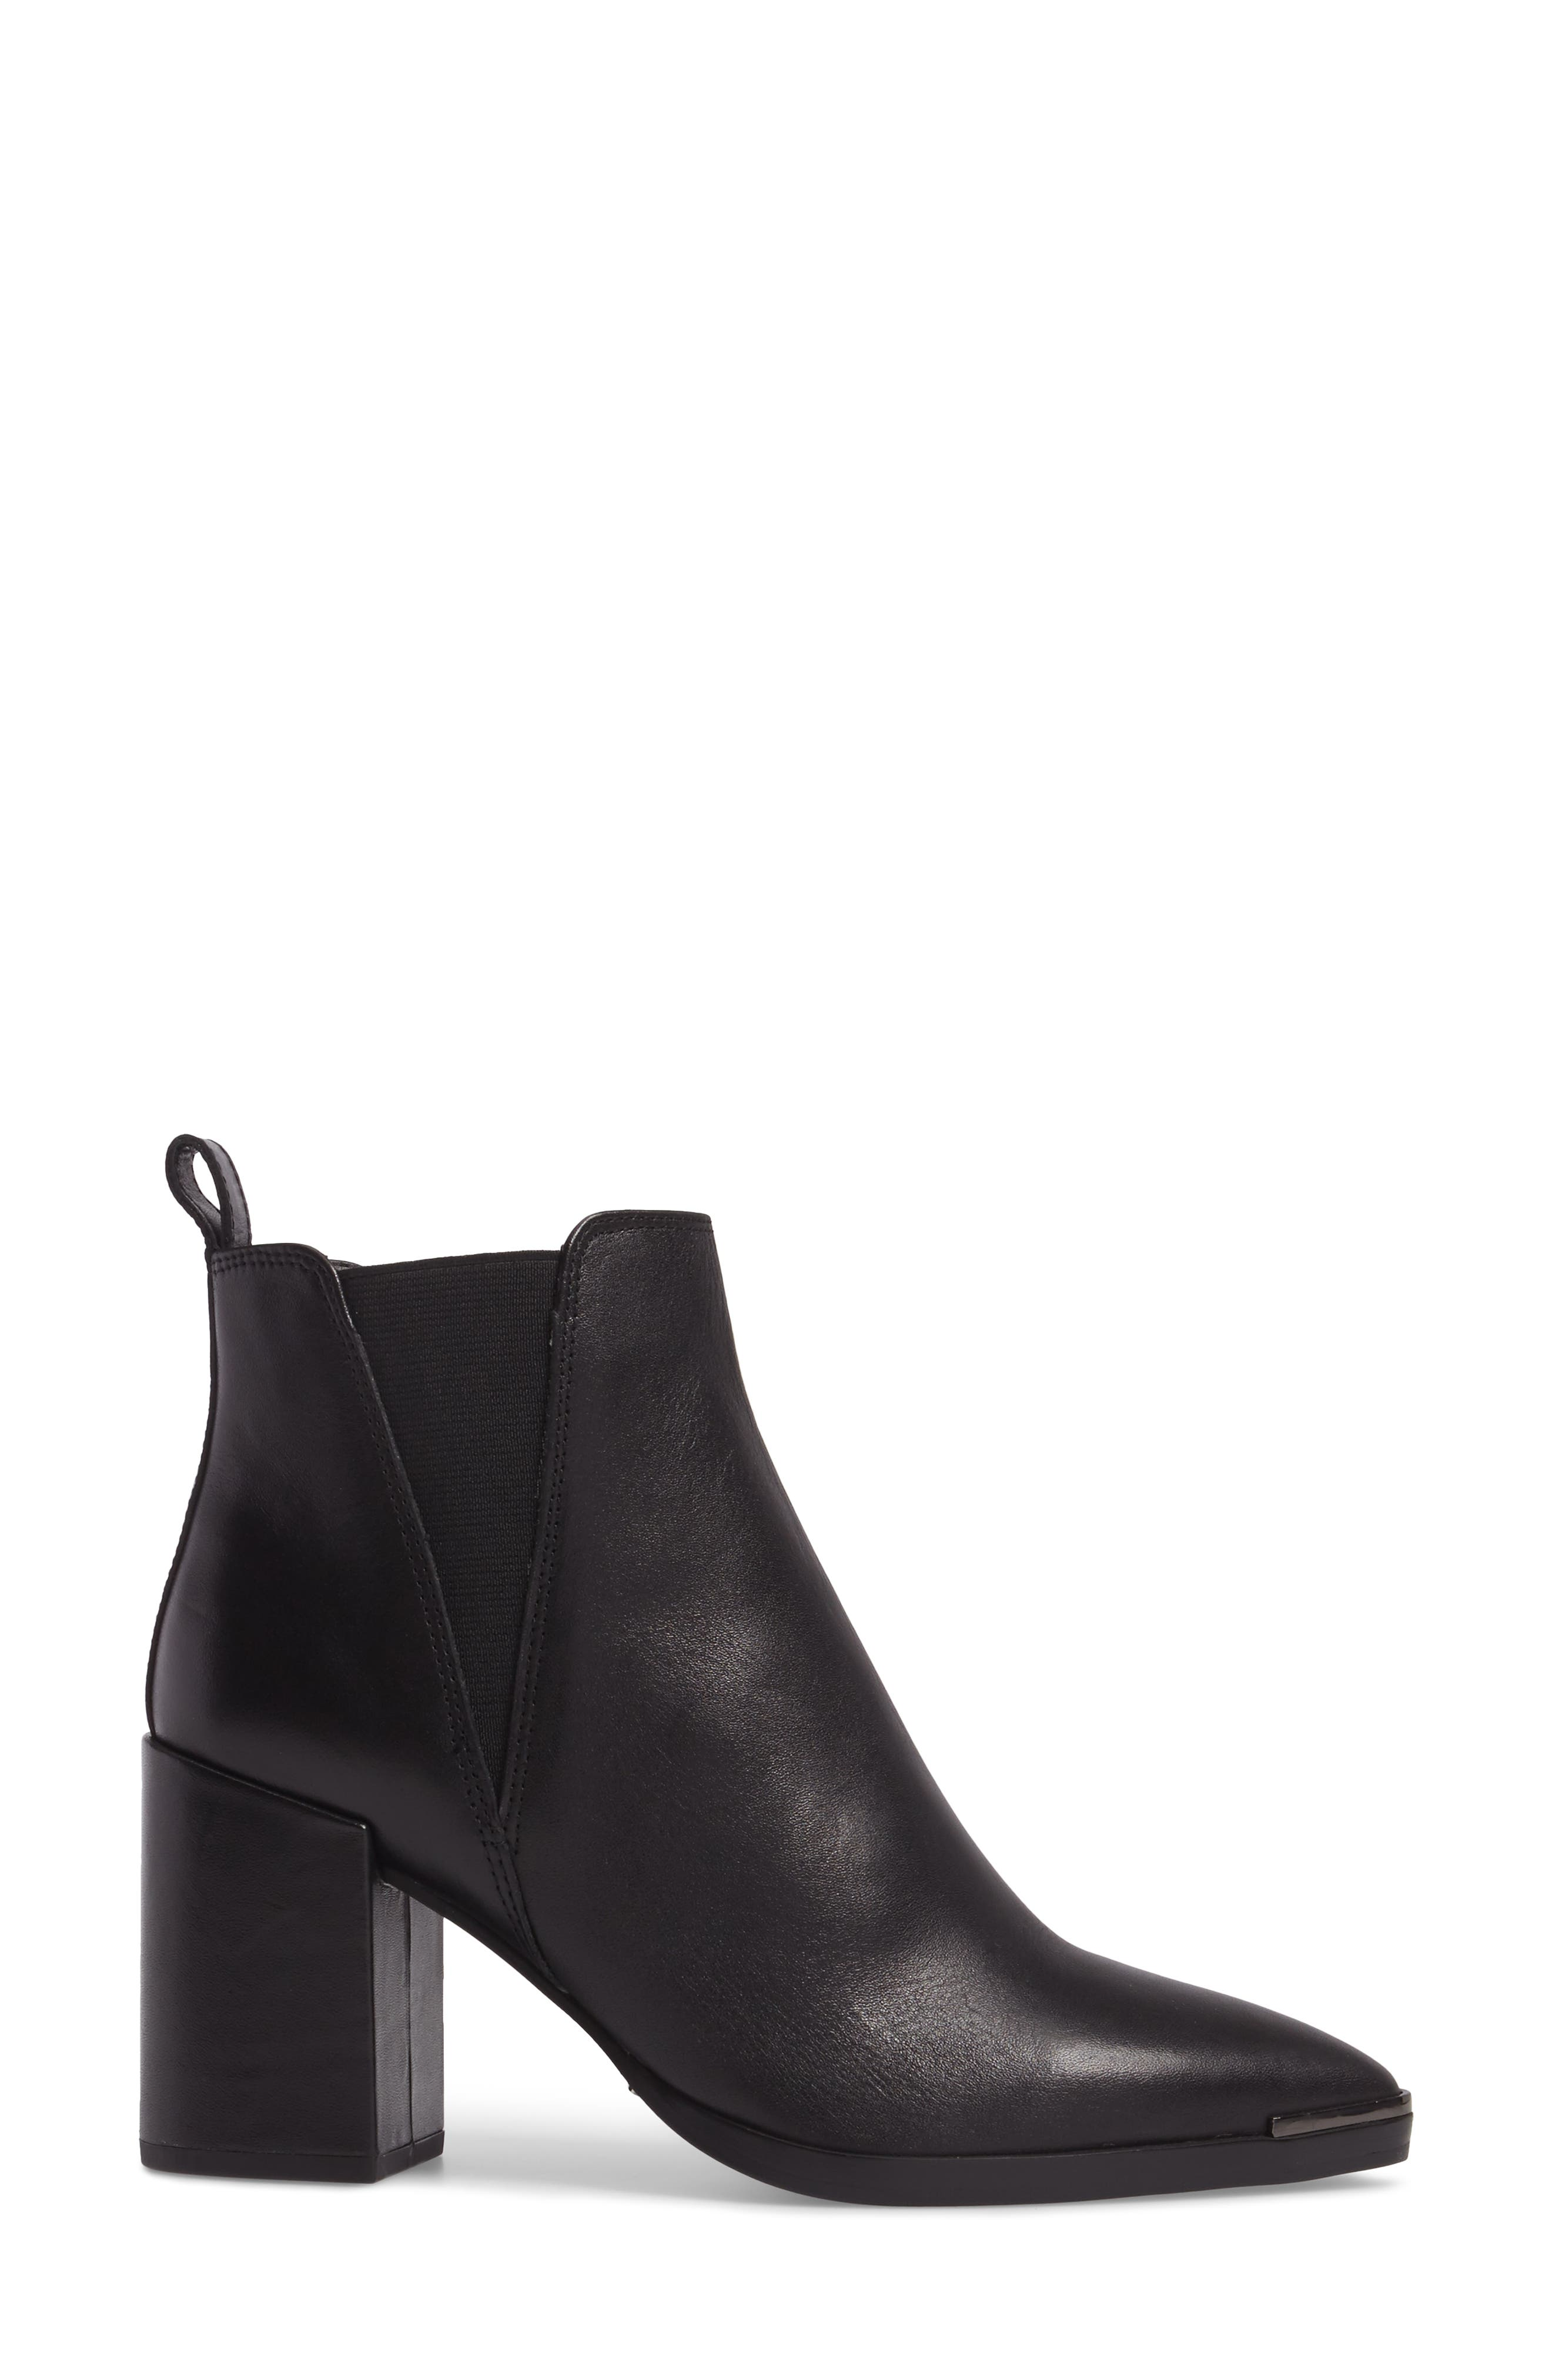 Bello Pointy Toe Bootie,                             Alternate thumbnail 3, color,                             Black Jetta Leather